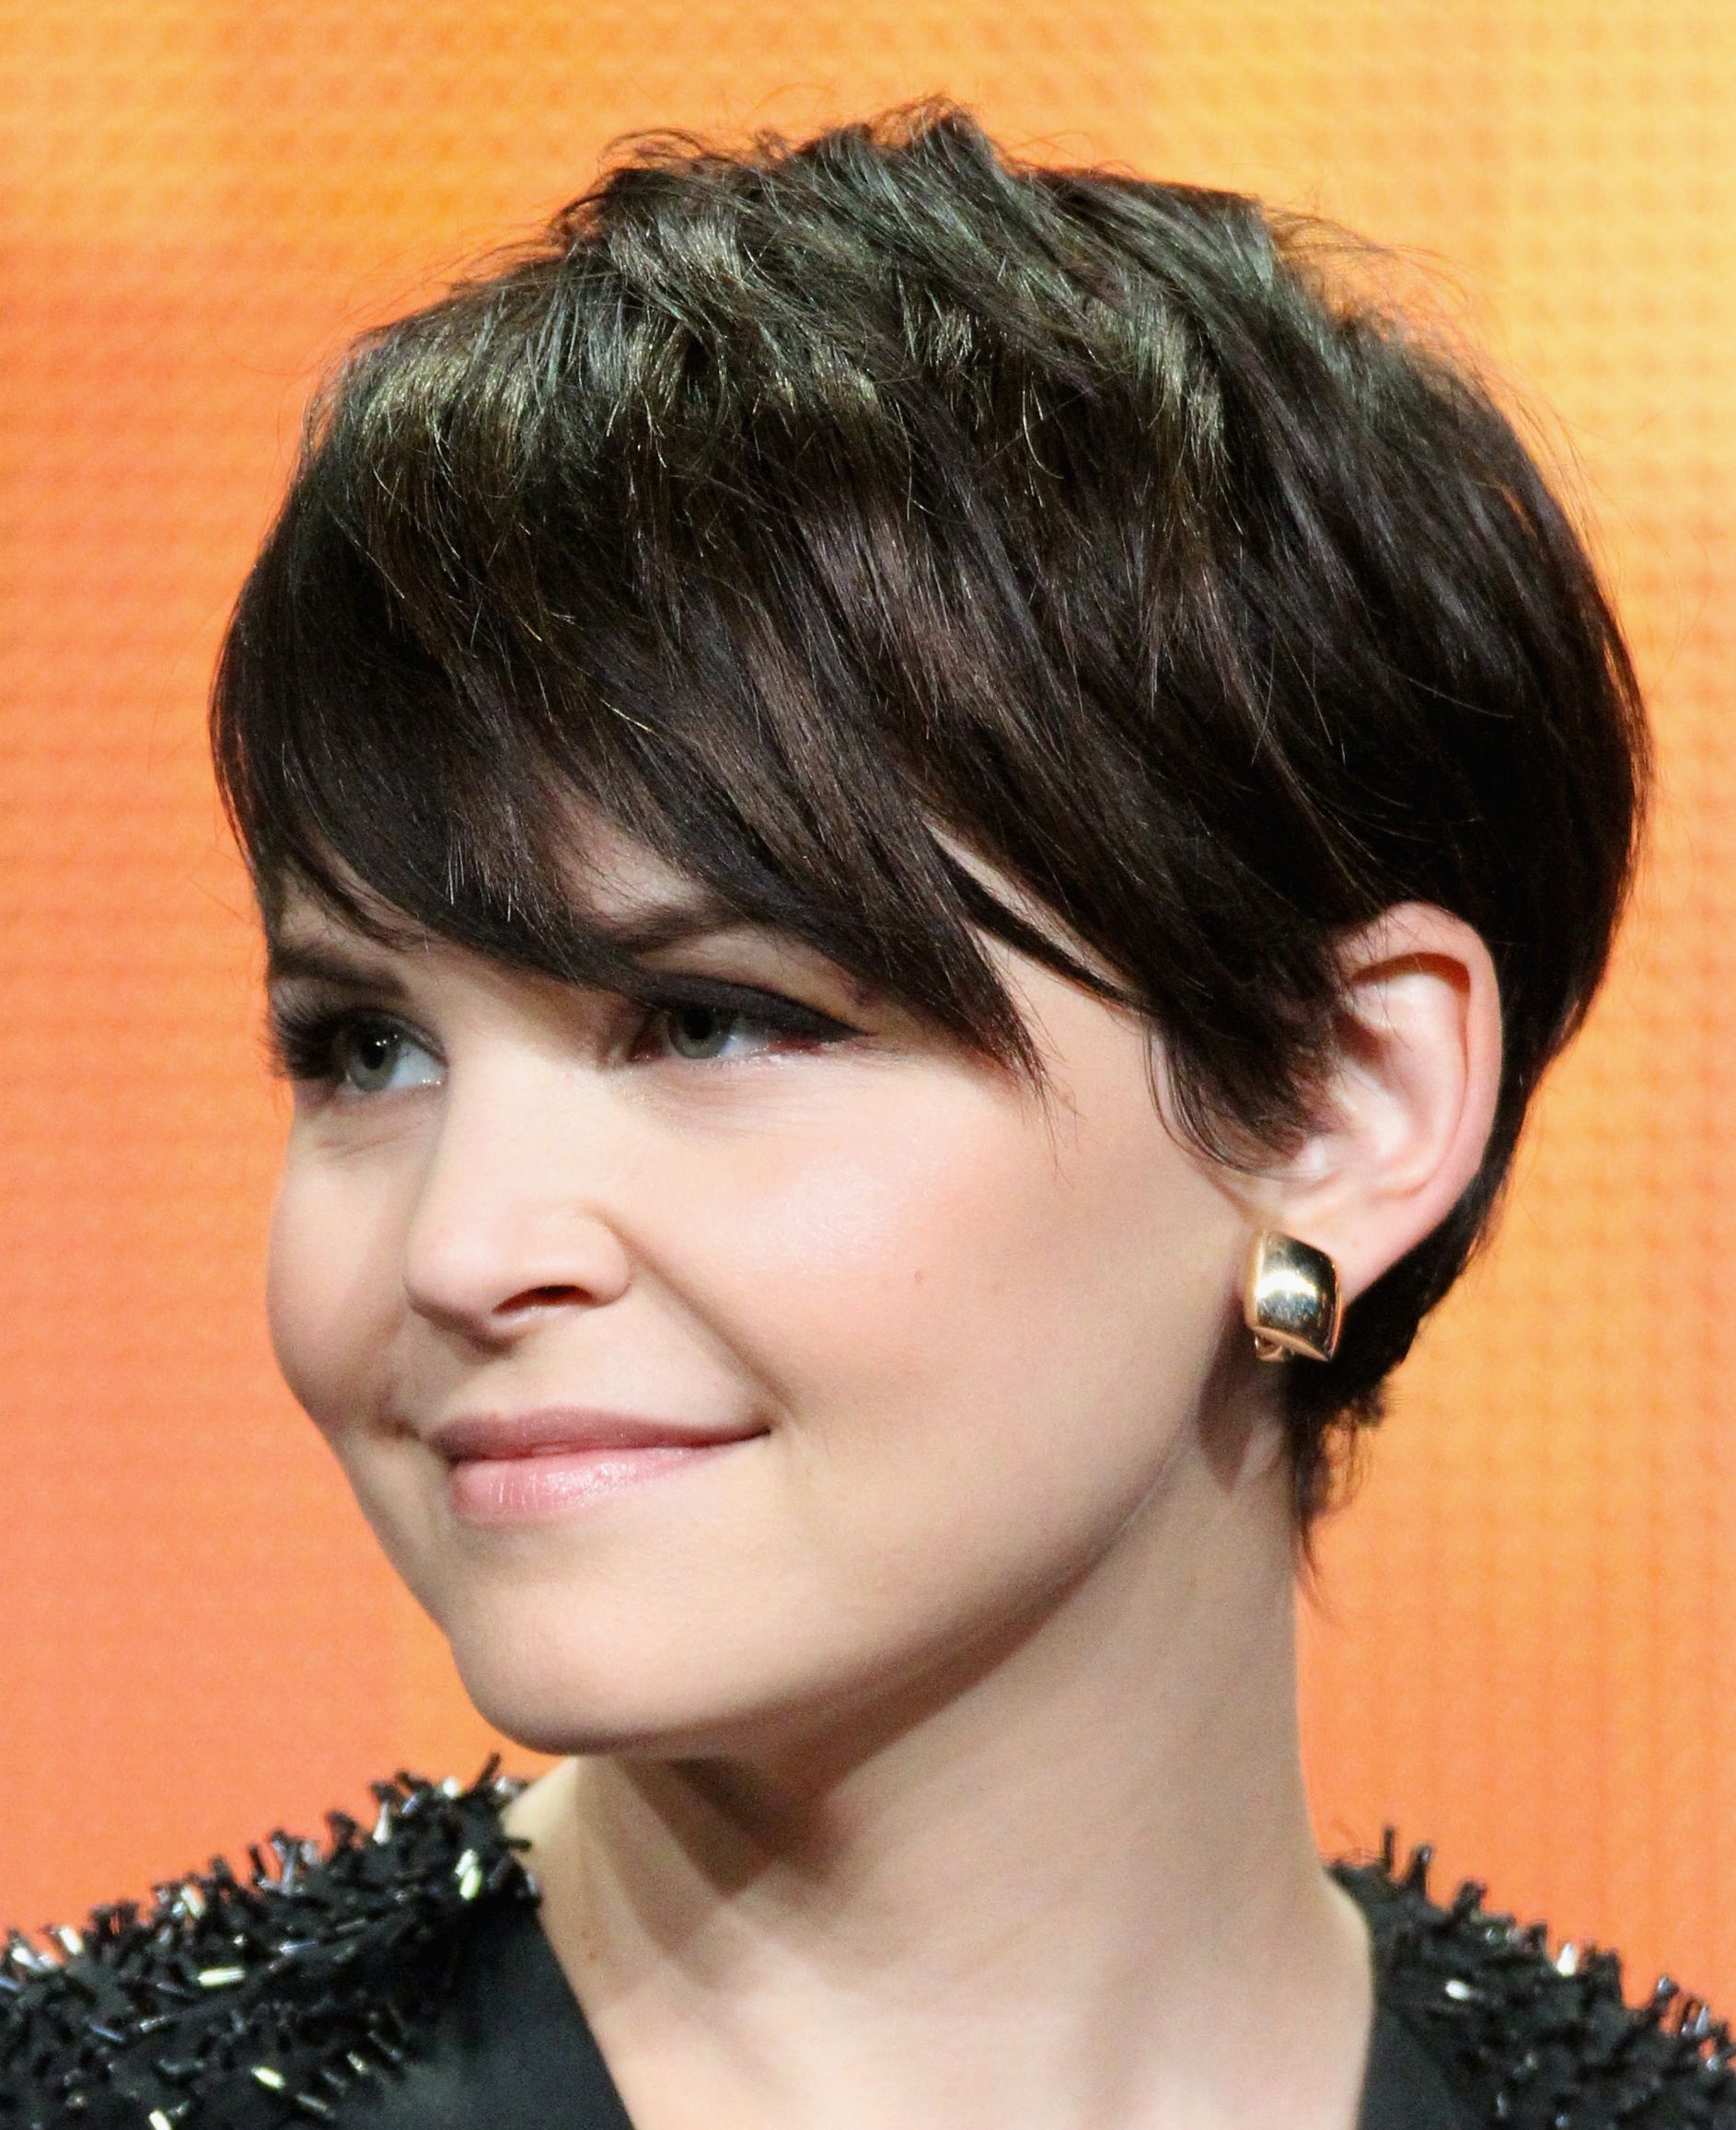 What Are Some Classic Short Cuts for Brown Hair